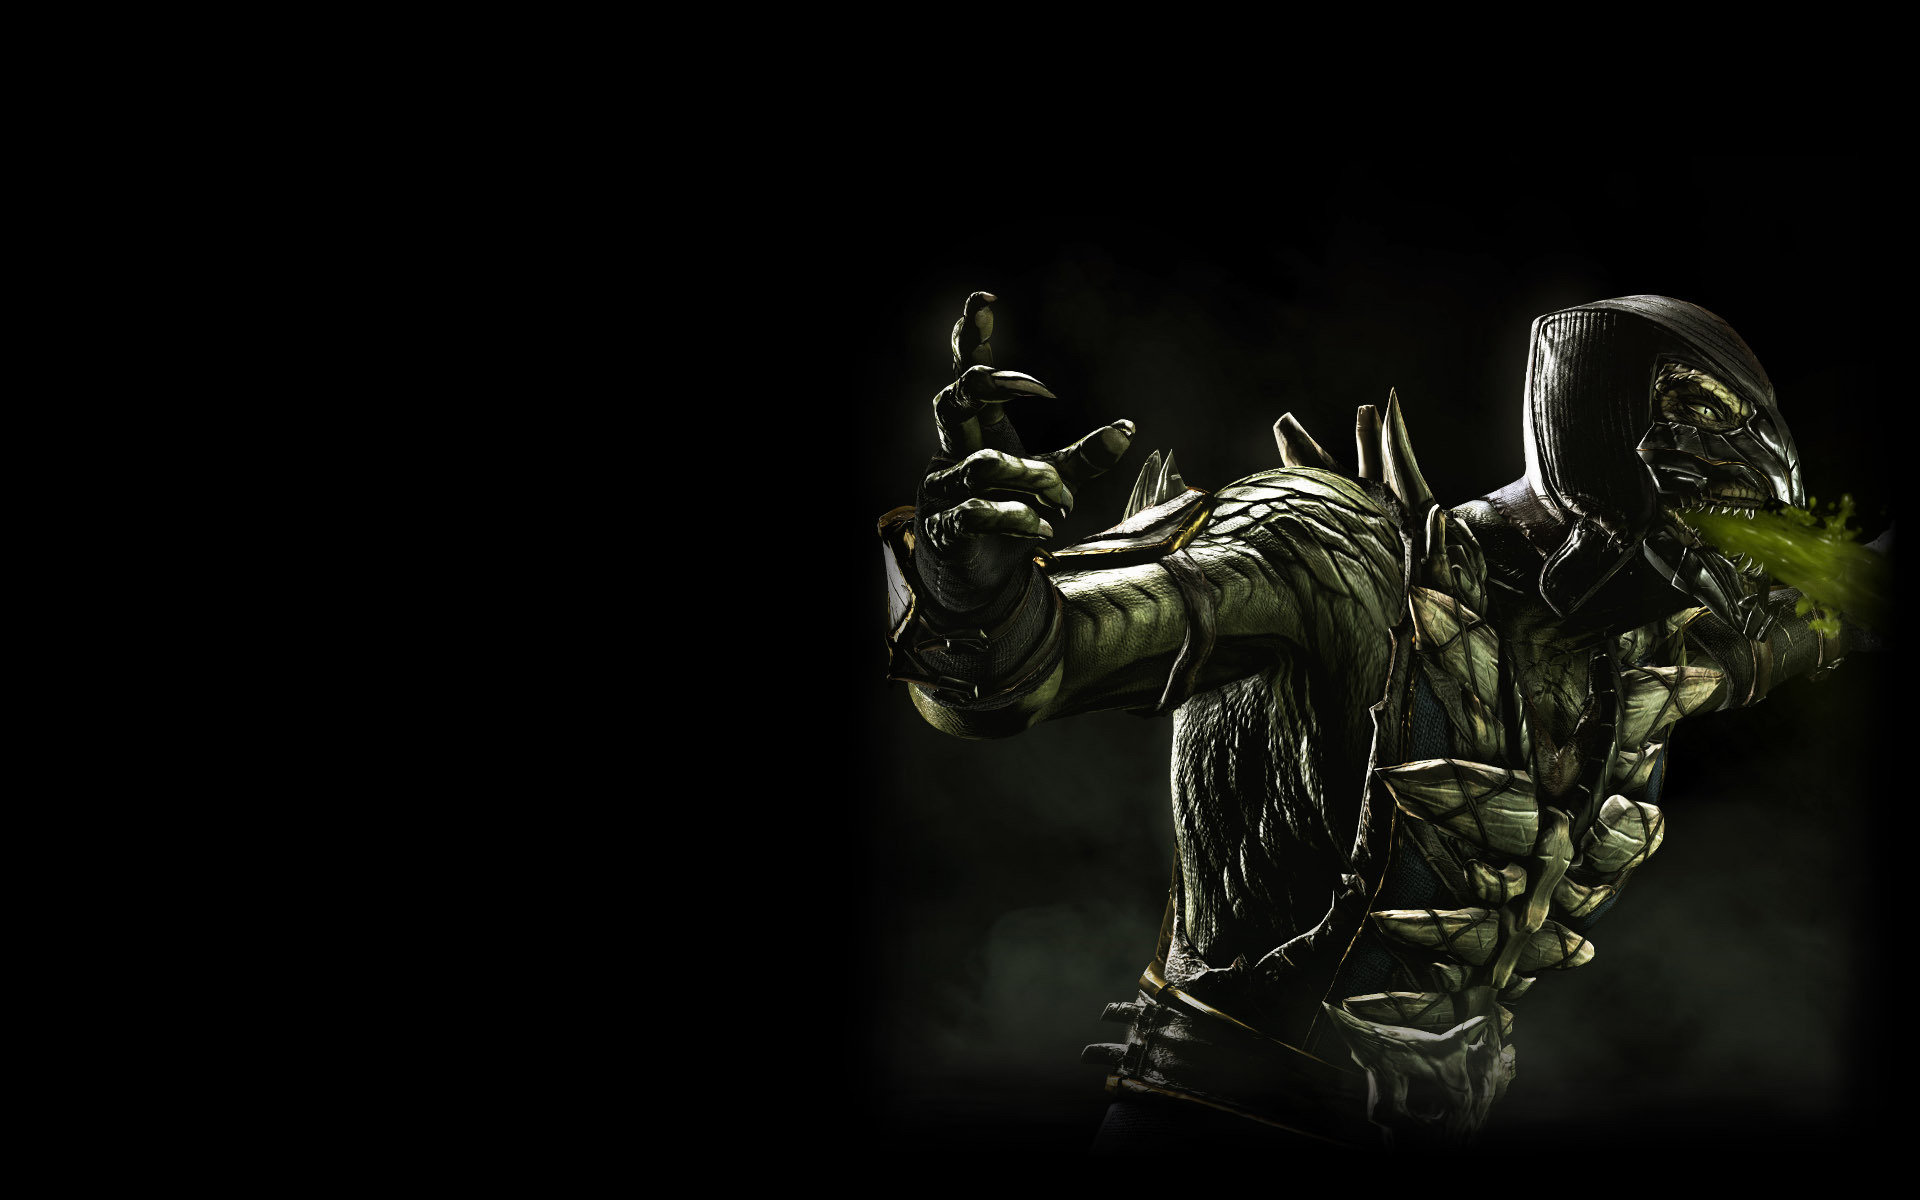 Mortal Kombat X Background: Mortal Kombat X Wallpapers HD For Desktop Backgrounds